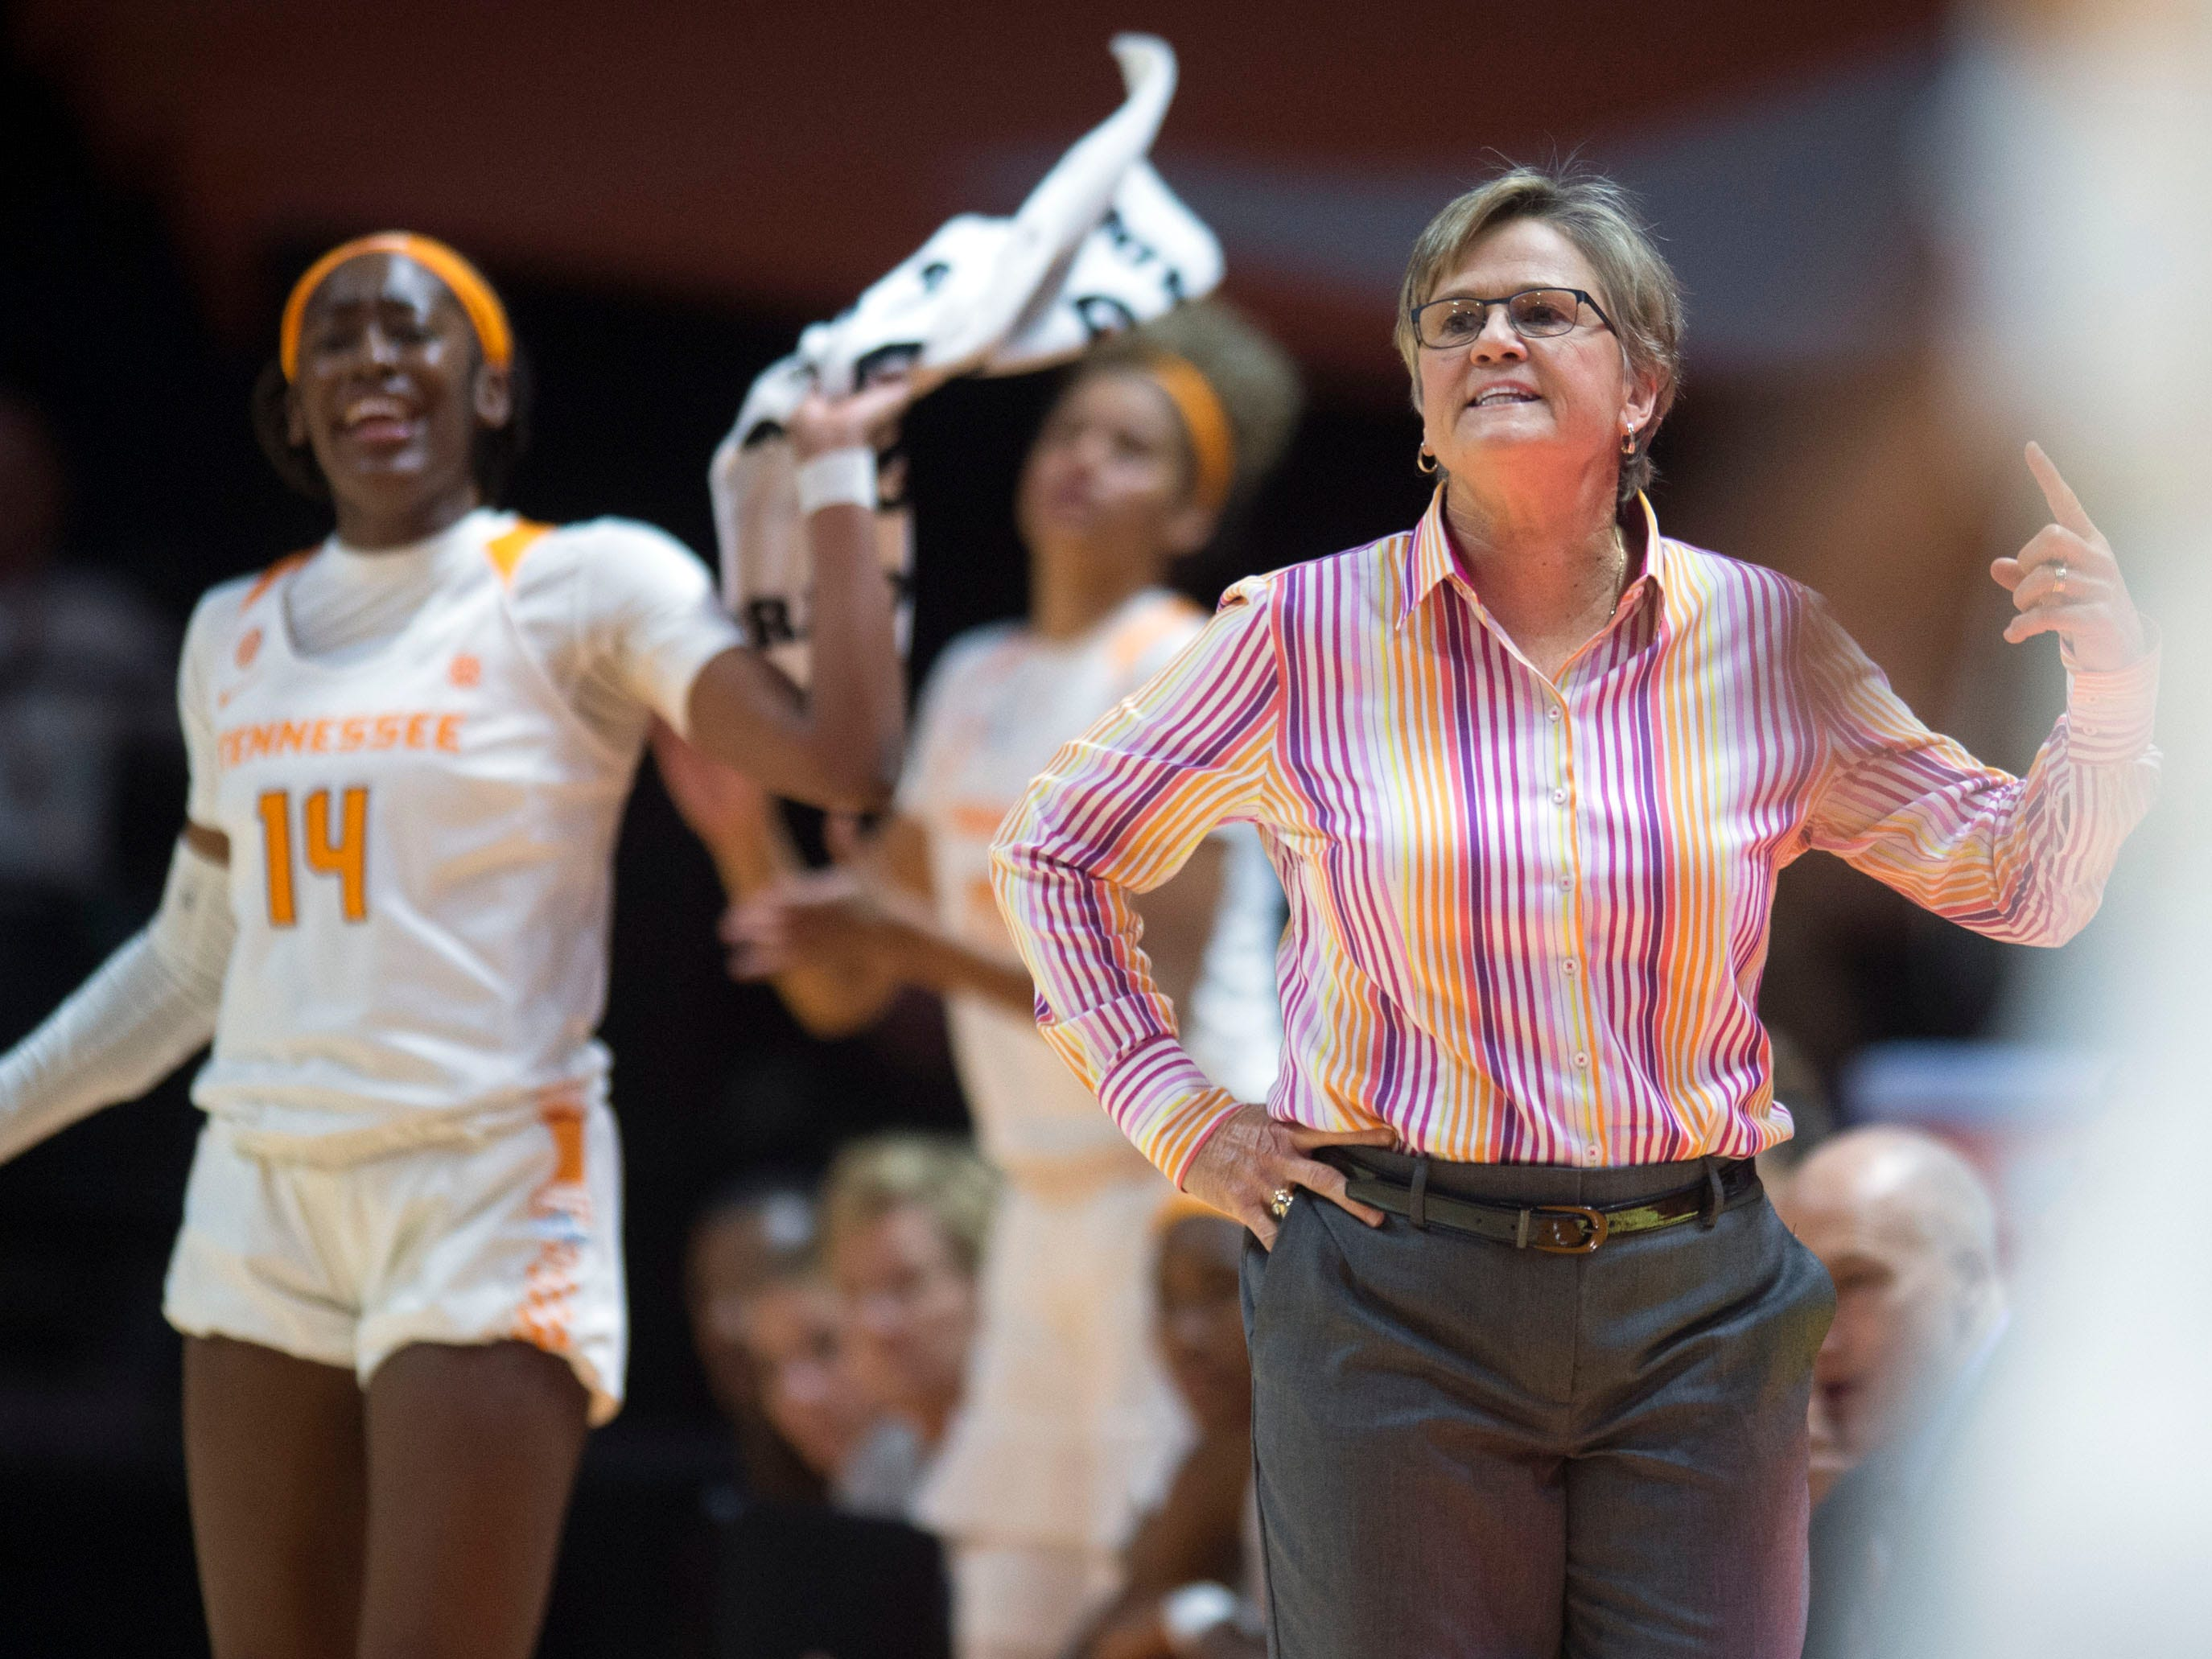 Tennessee head coach Holly Warlick yells directions to the players during the game against Stetson on Wednesday, December 5, 2018.